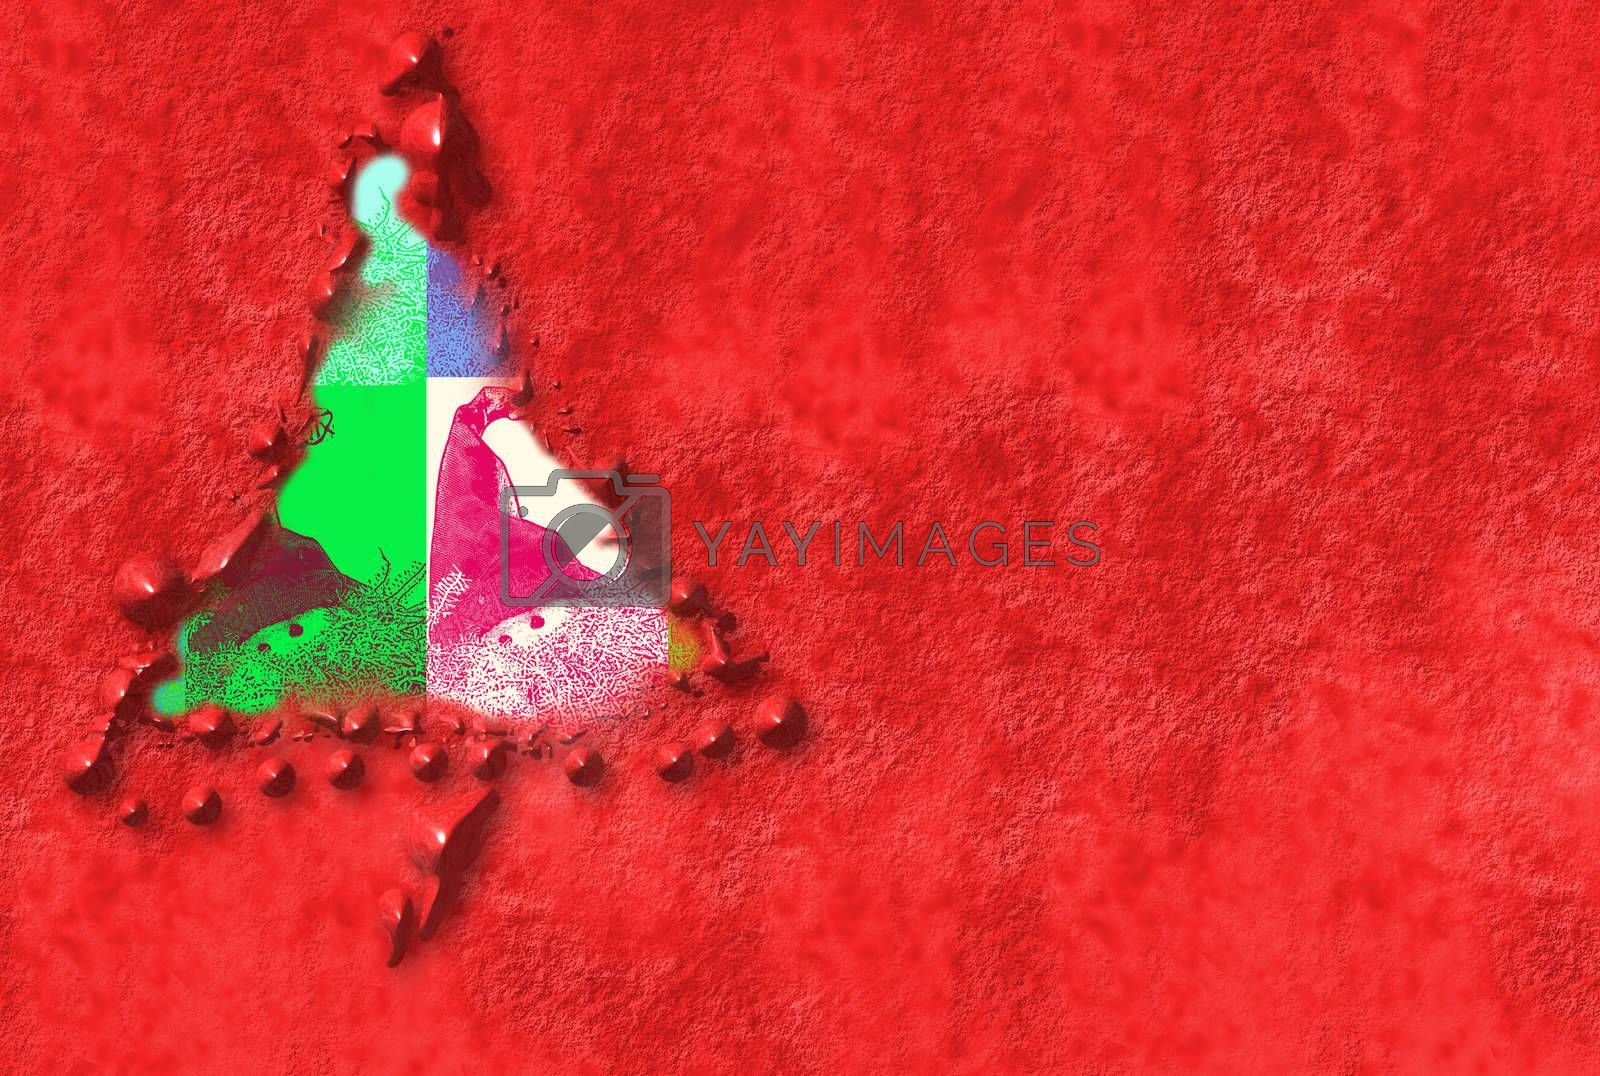 Cards of Christmas tree with pictures of Santa Claus in a red background with copyspace